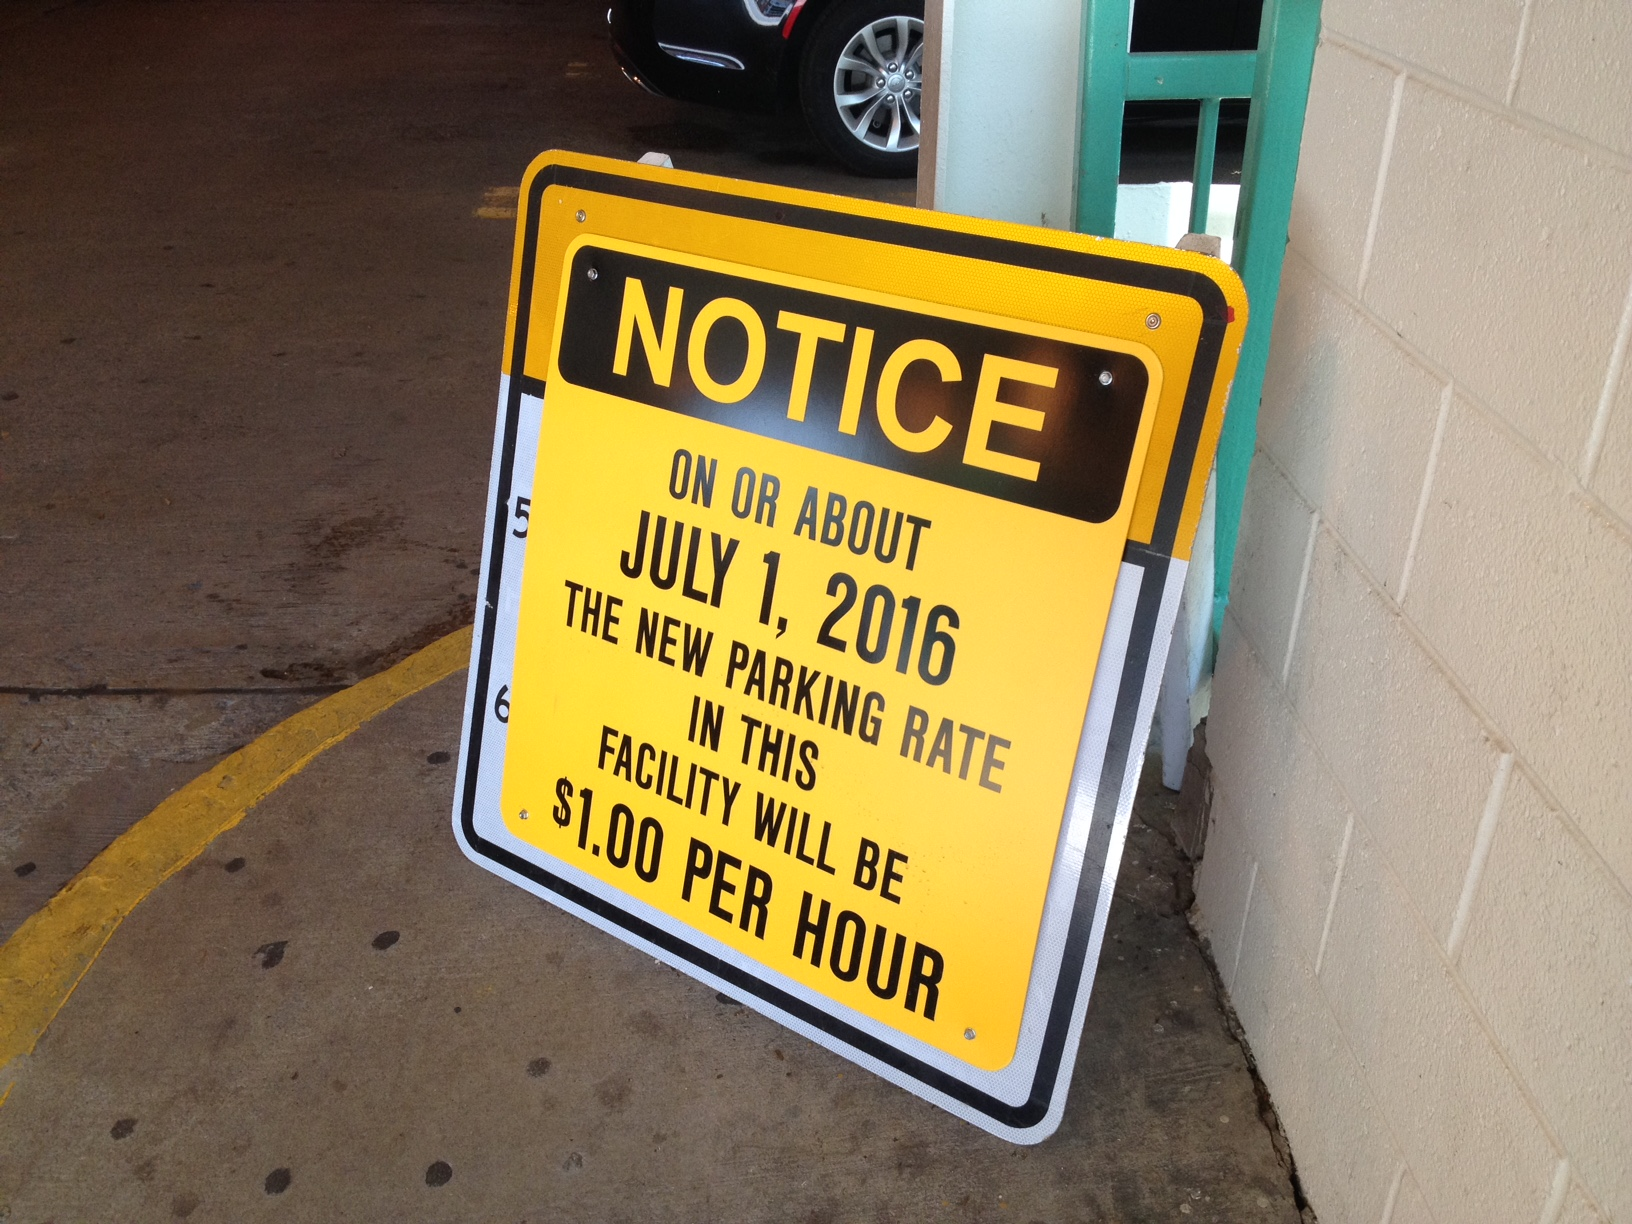 Parking Fees Going Up At Three Bethesda Garages